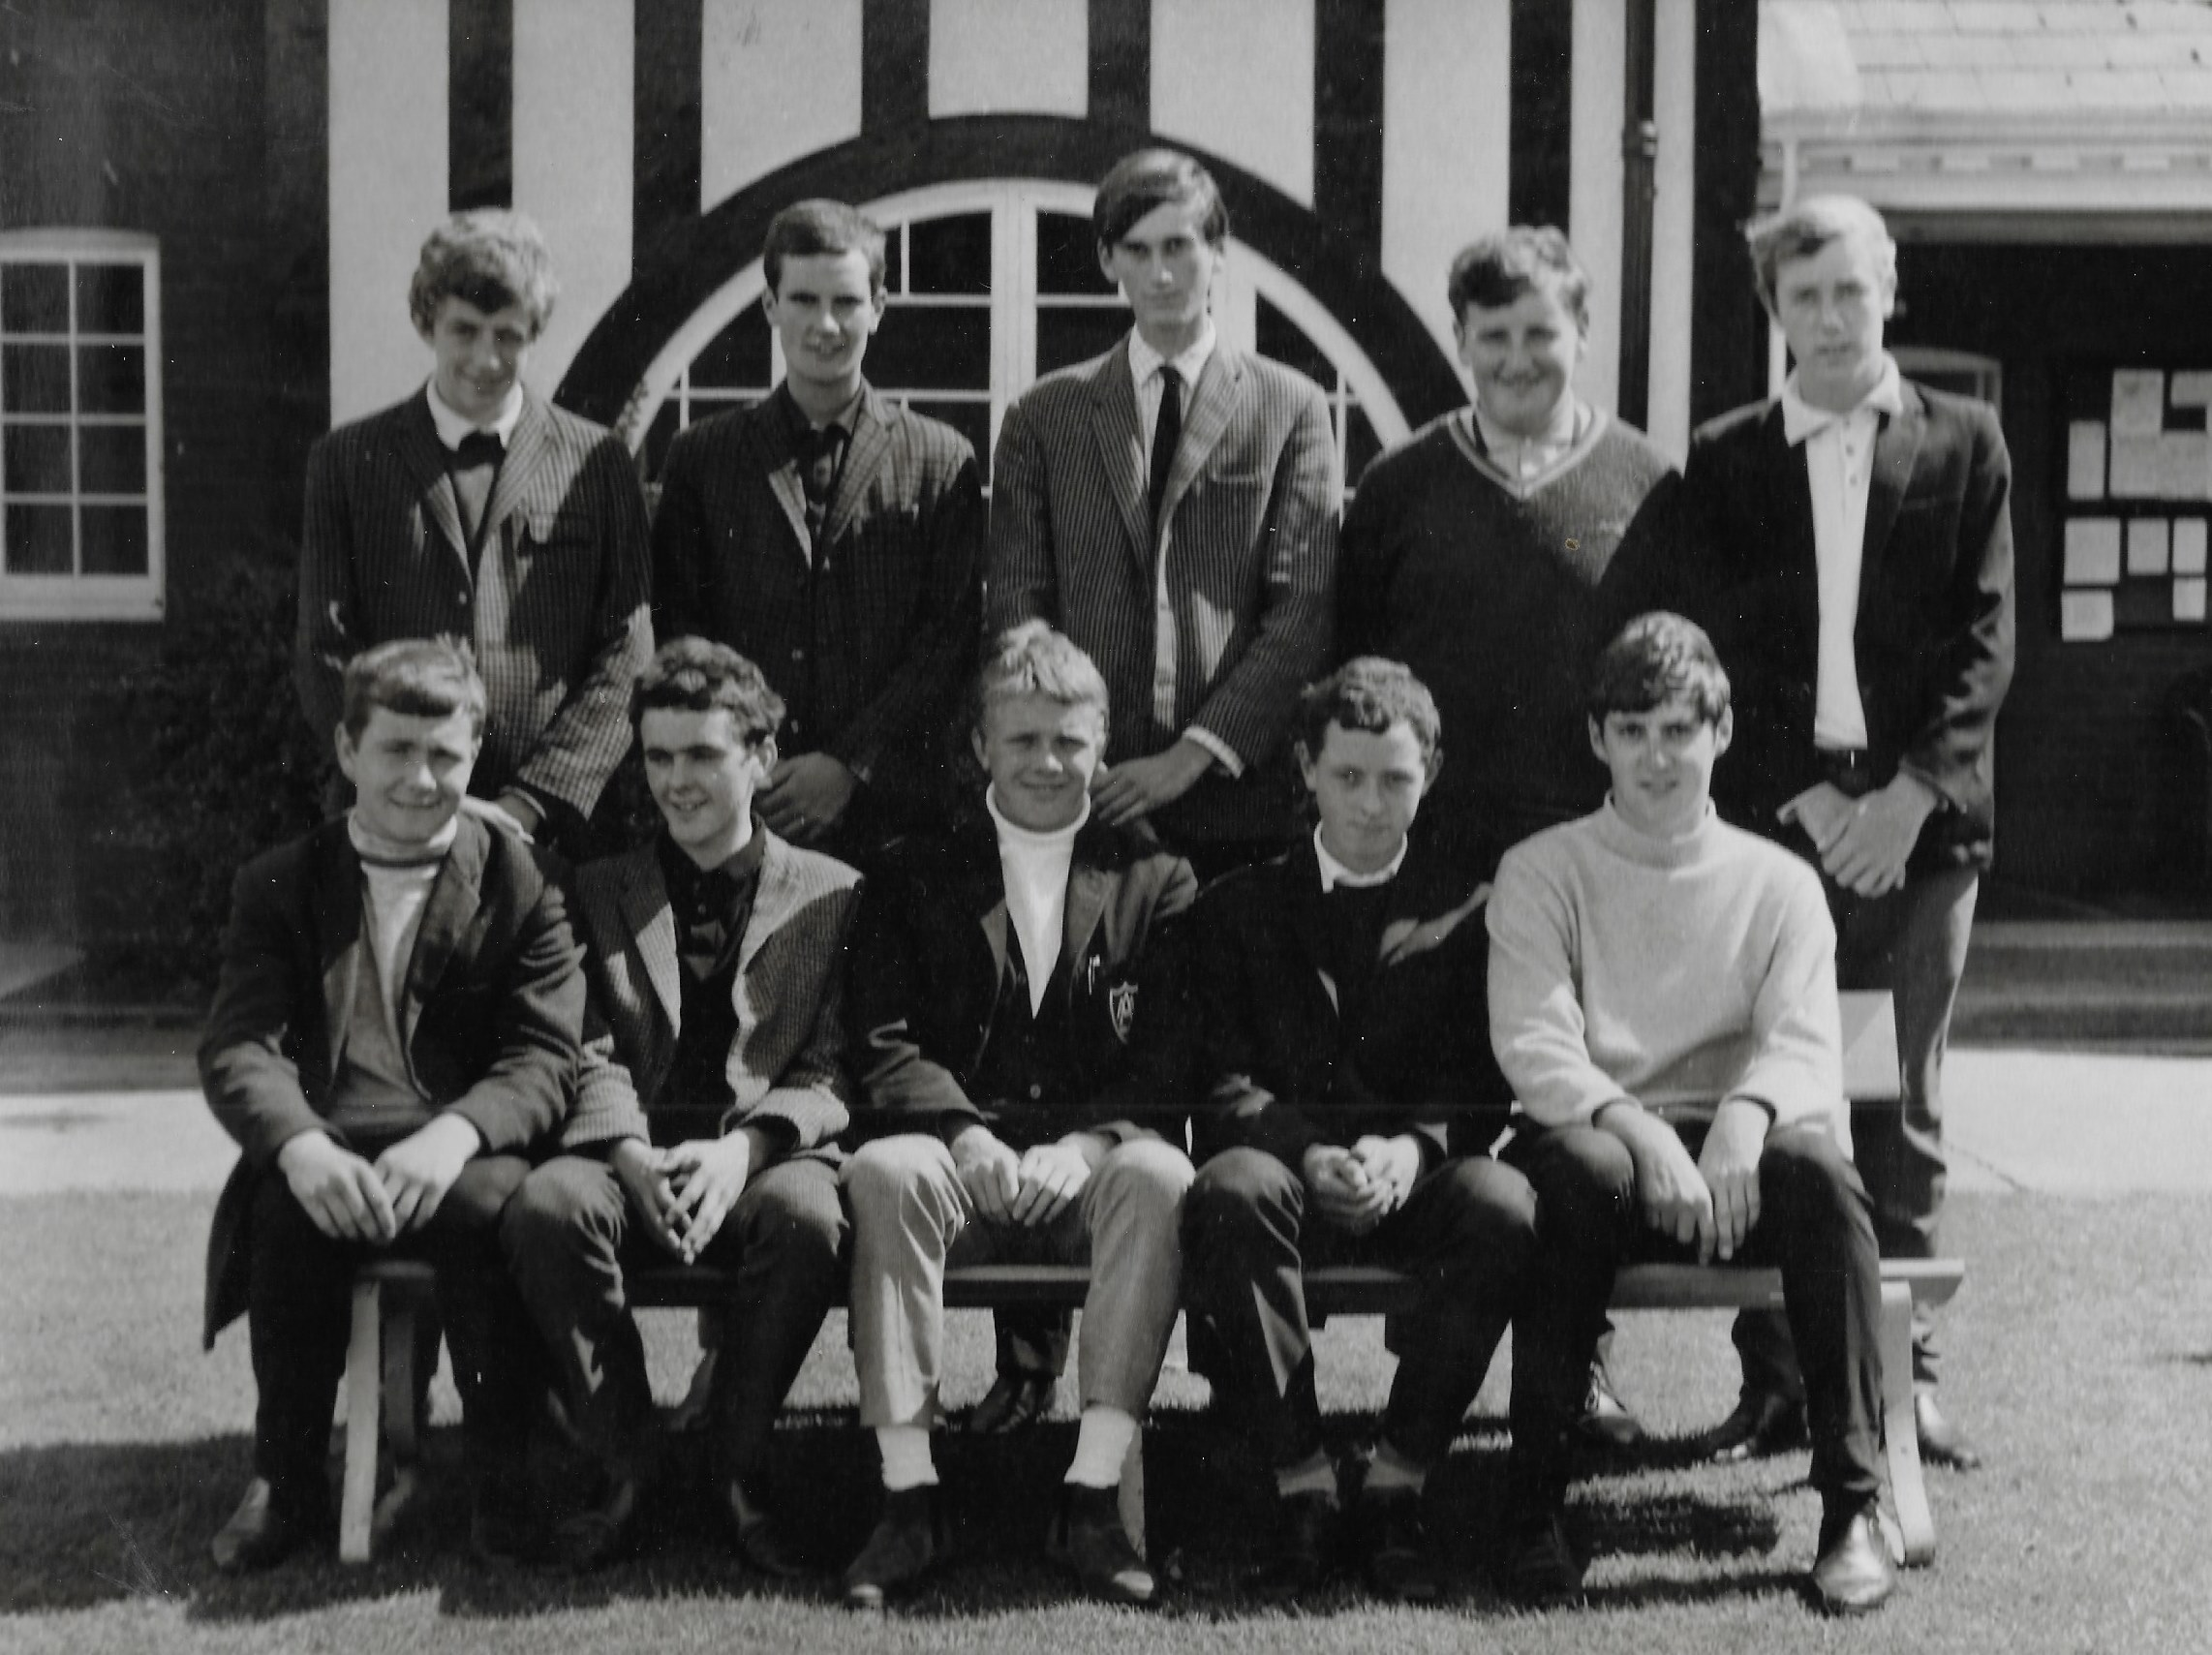 1967 South Wales Boys Team